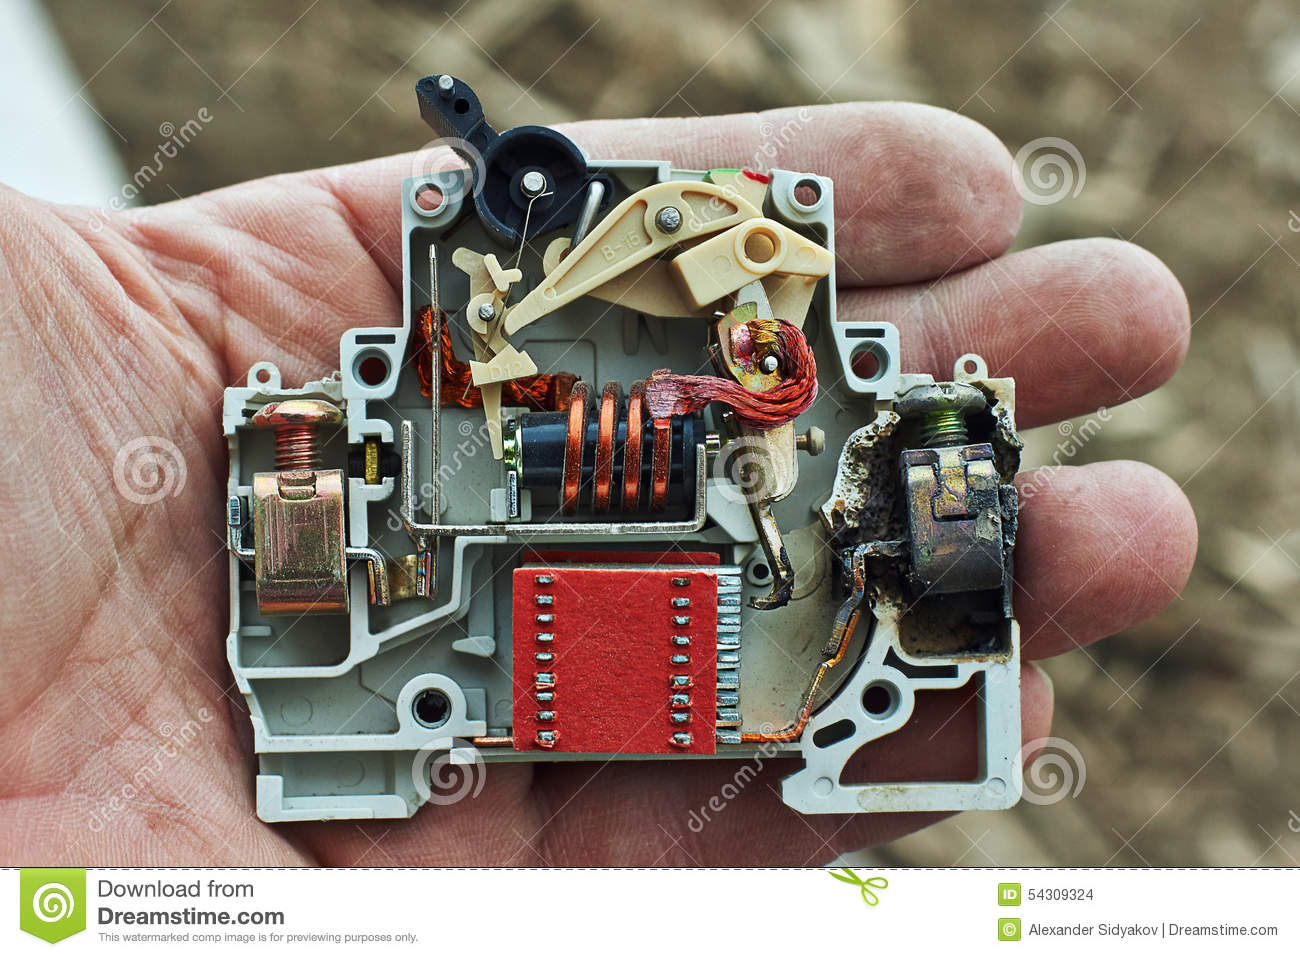 Unusual Jem Wiring Diagram Huge 5 Way Switch Square Viper Remote Start Wiring 5 Way Rotary Switch Wiring Diagram Young How To Wire Guitar Pickups White3 Pickup Guitar Electric Circuit Breaker Overload Burned. Stock Photo   Image ..